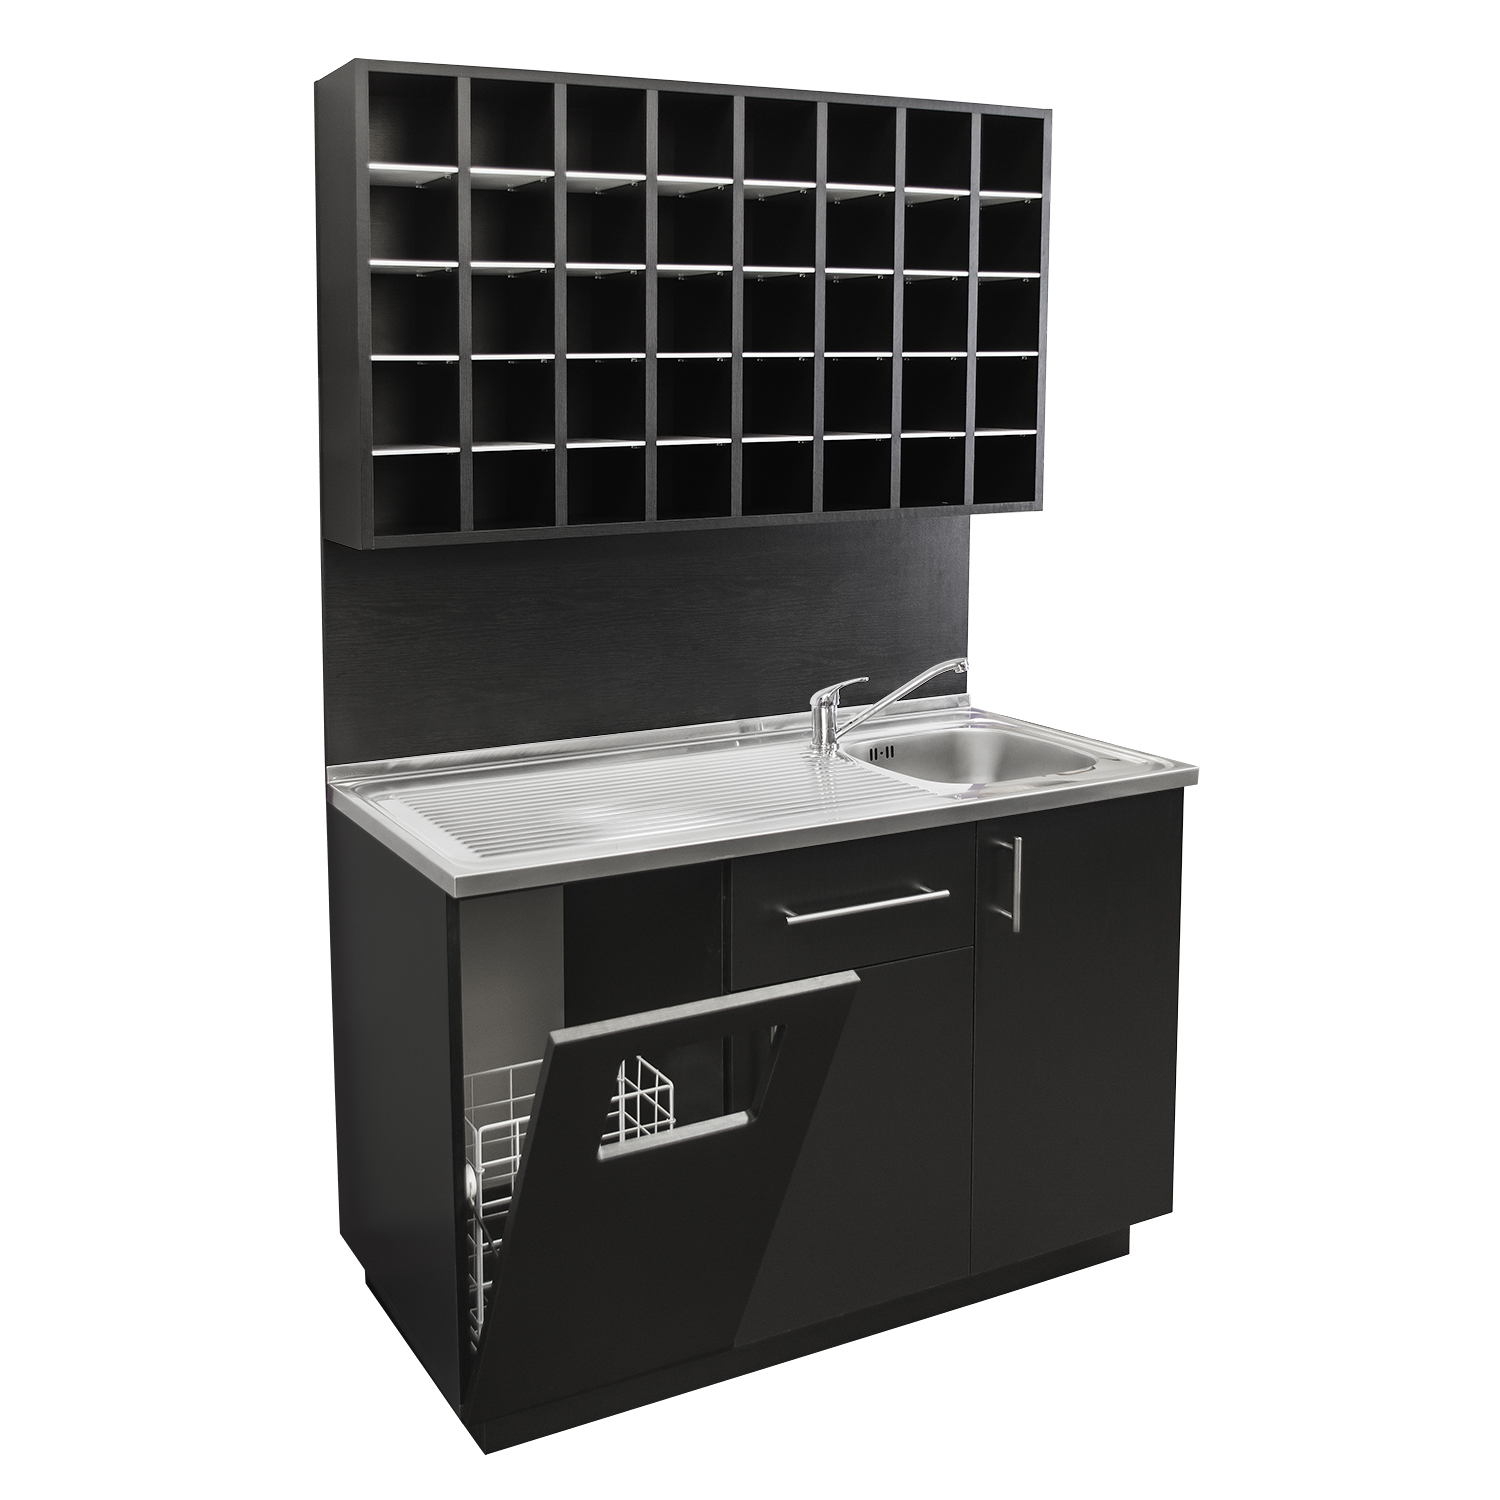 4' Color Mixing Station with Sink and Stainless Steel Counter alternative product image 5